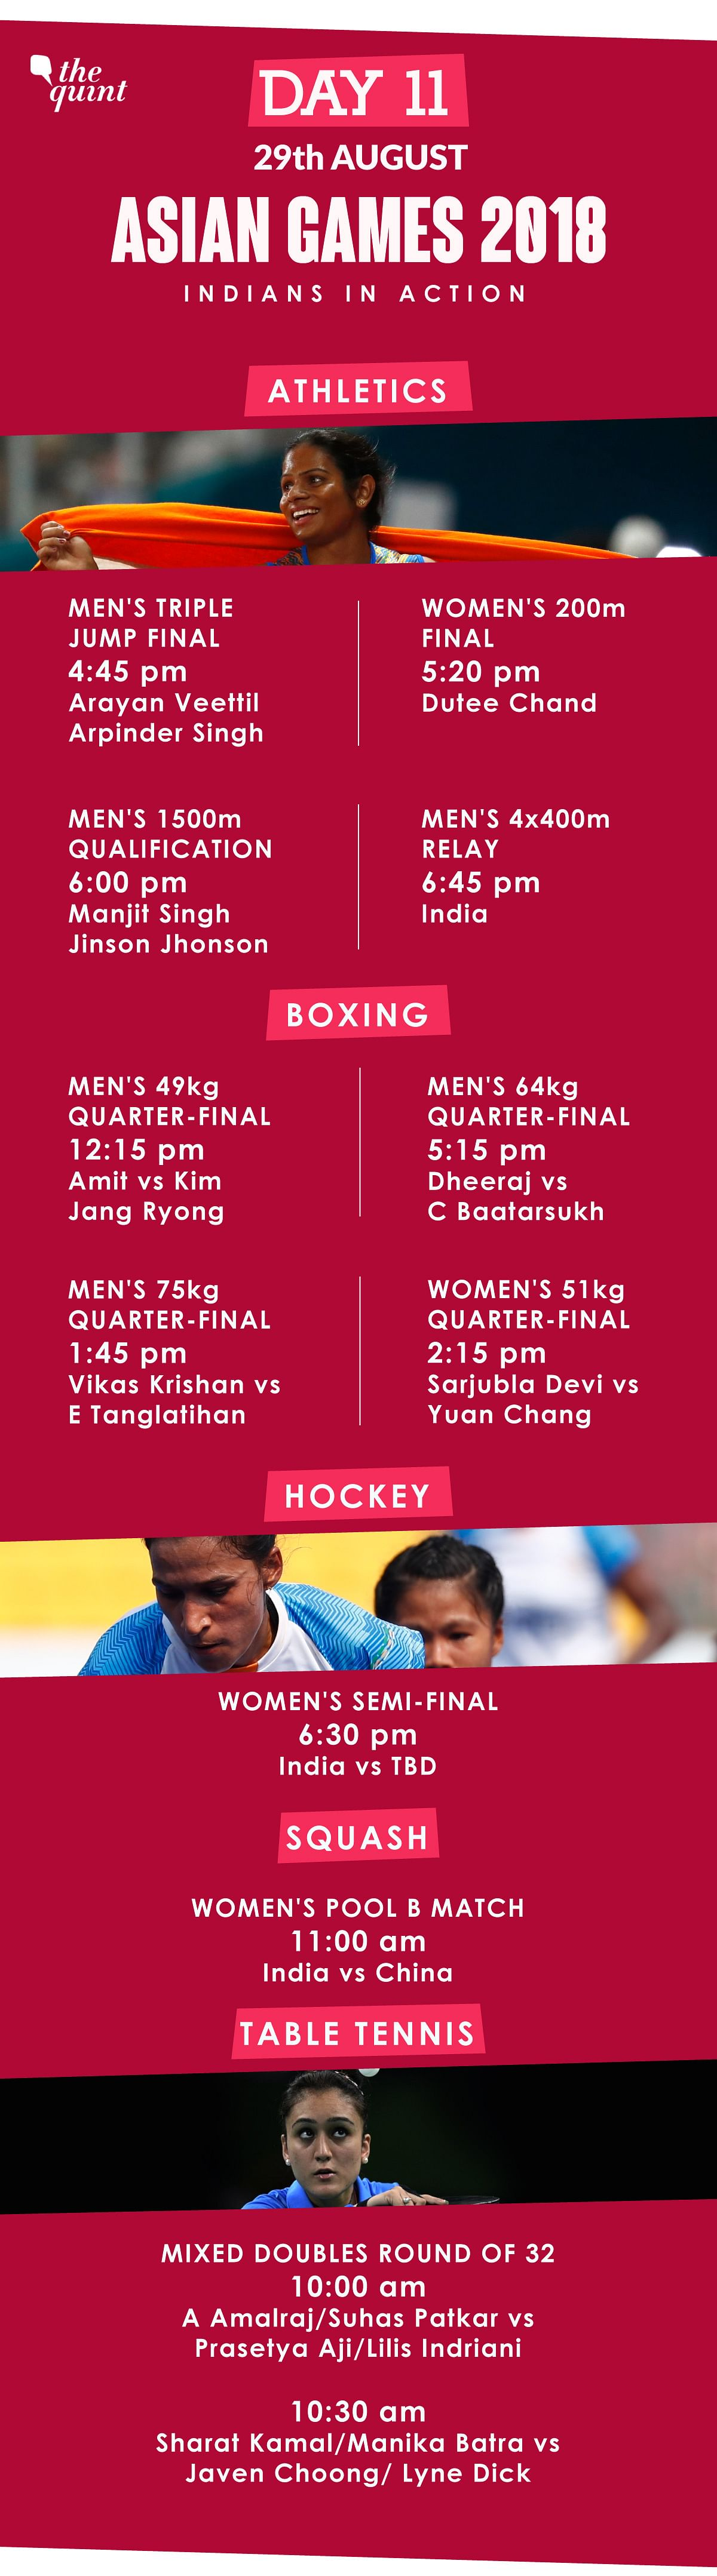 Asiad Day 11 Schedule: Women's Hockey in Semis, Dutee in Final